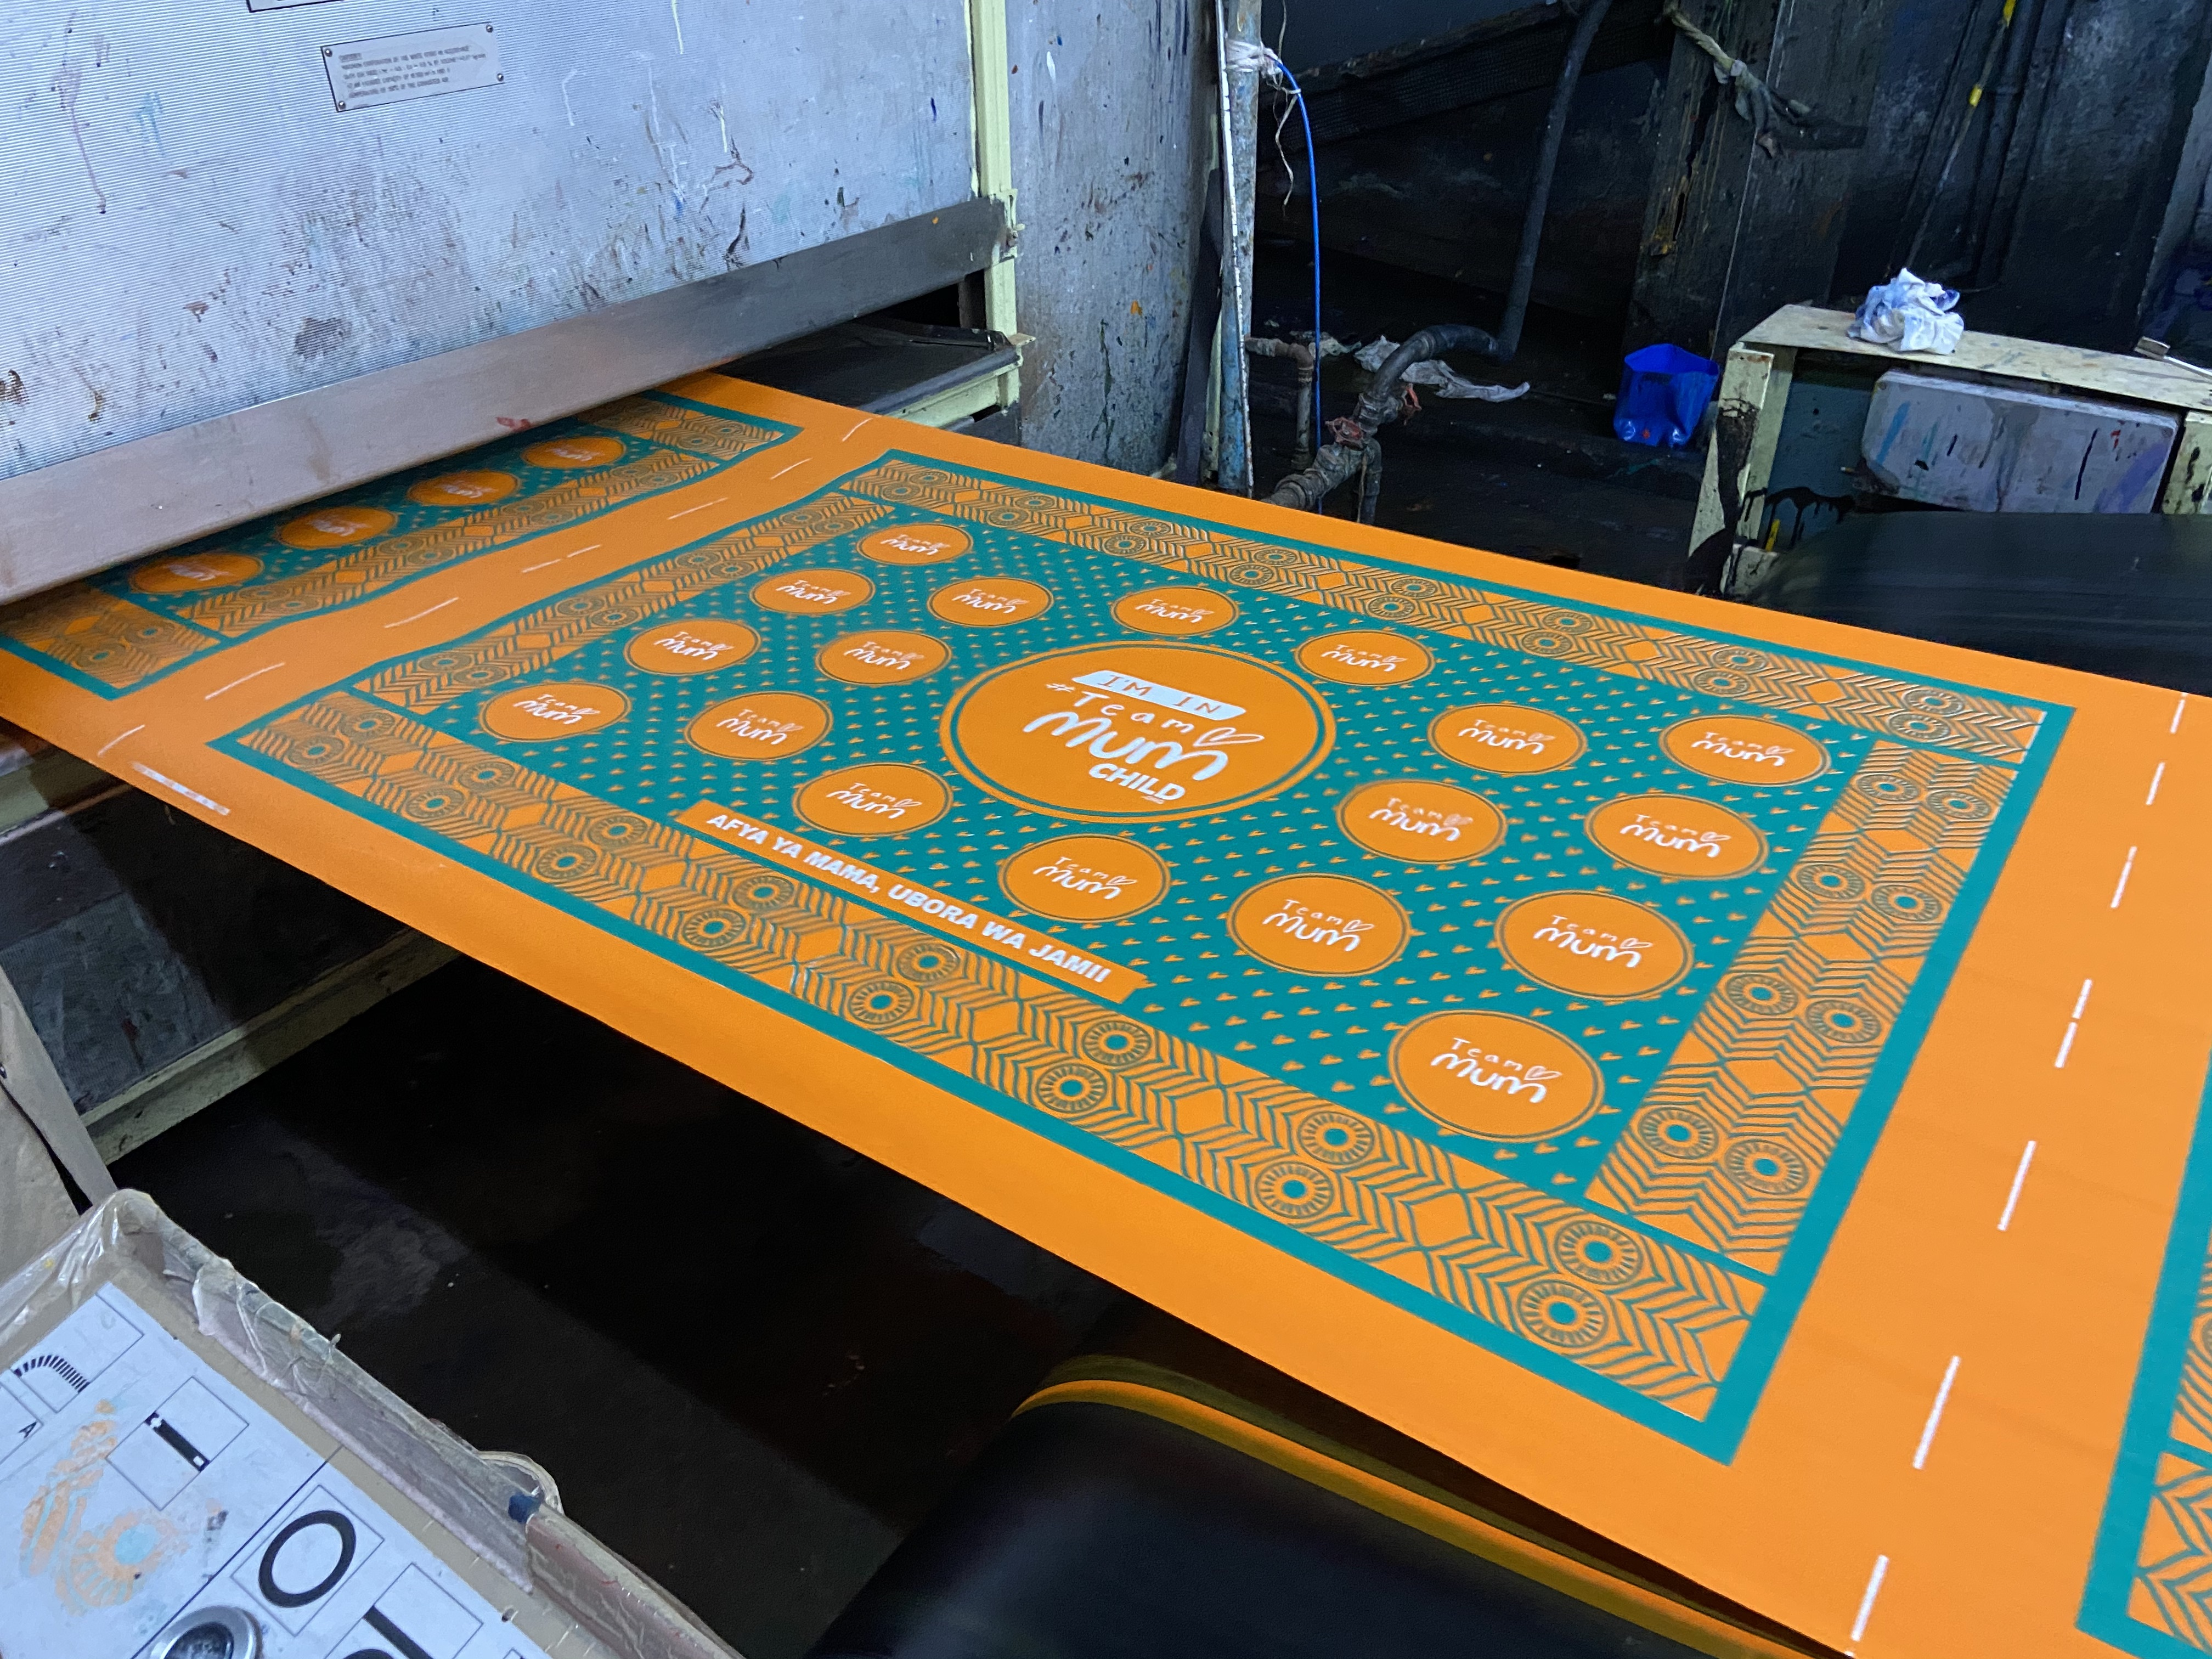 he fabric is taken through a process known as curing which involves fixing the fabric colour